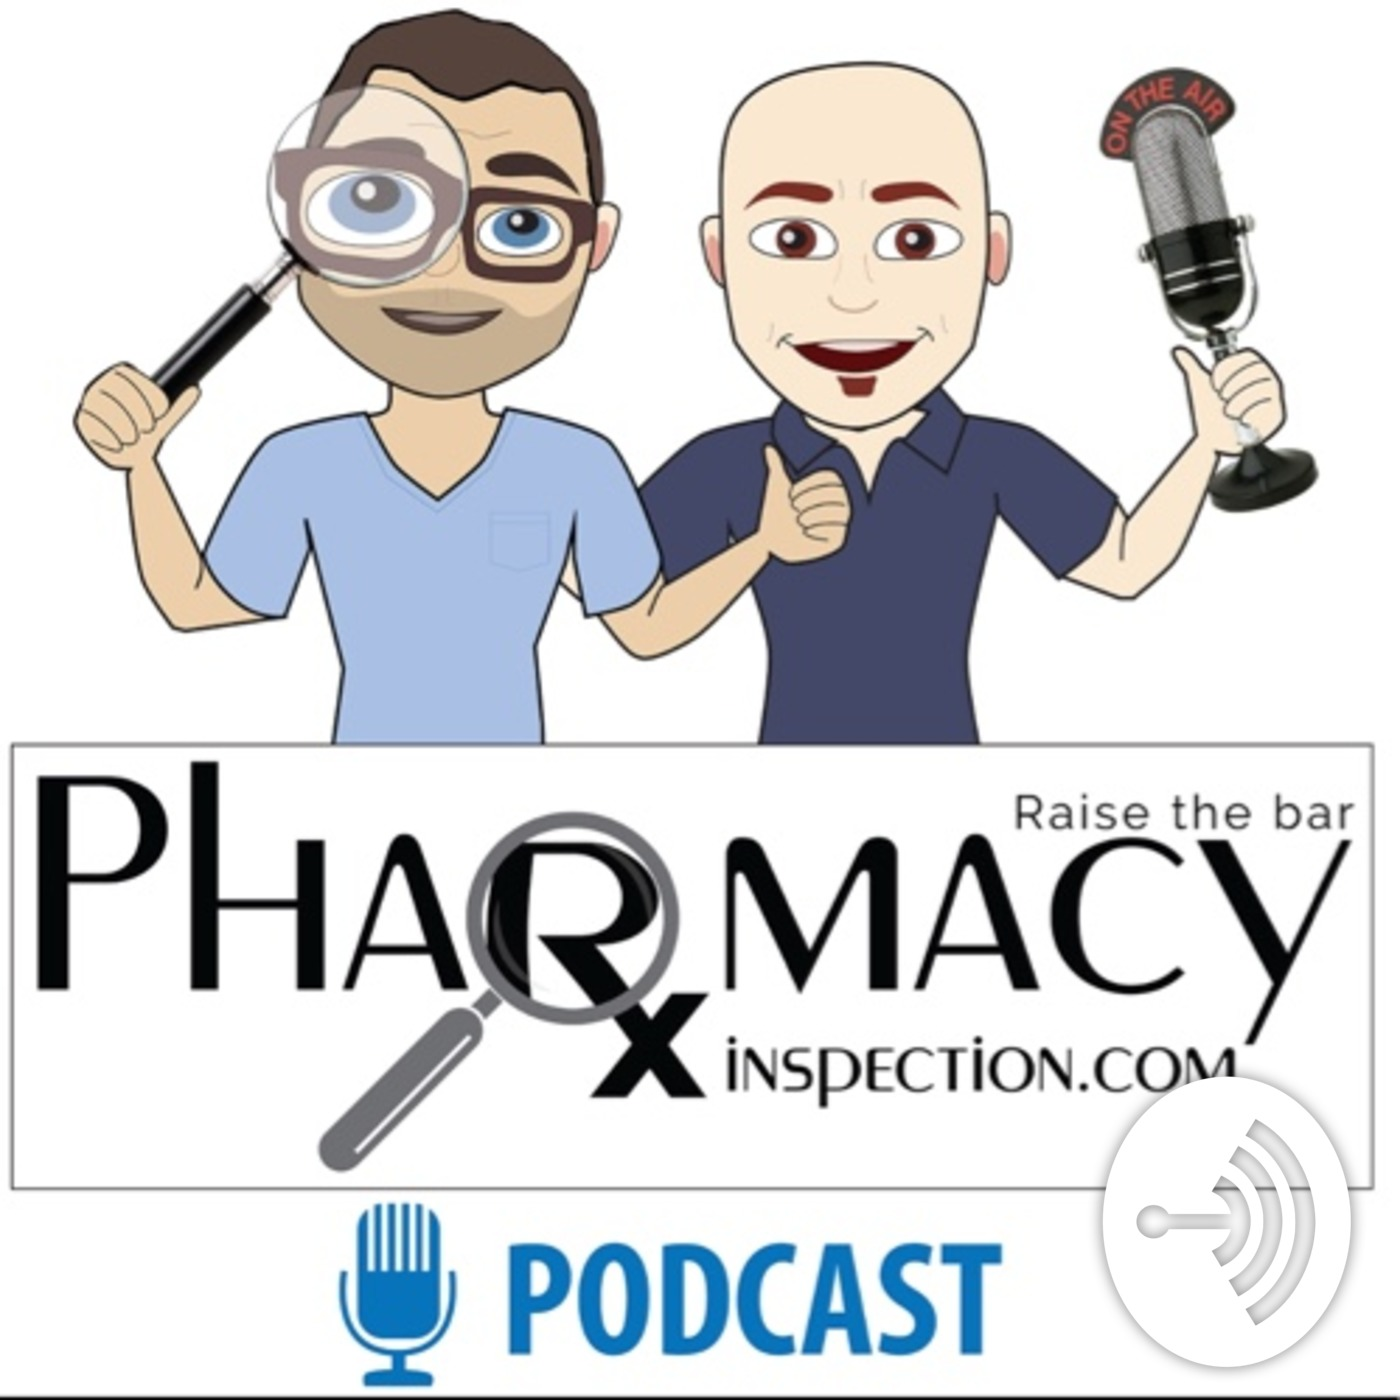 Pharmacy Inspection Podcast Episode 23 - Greg Stowell.